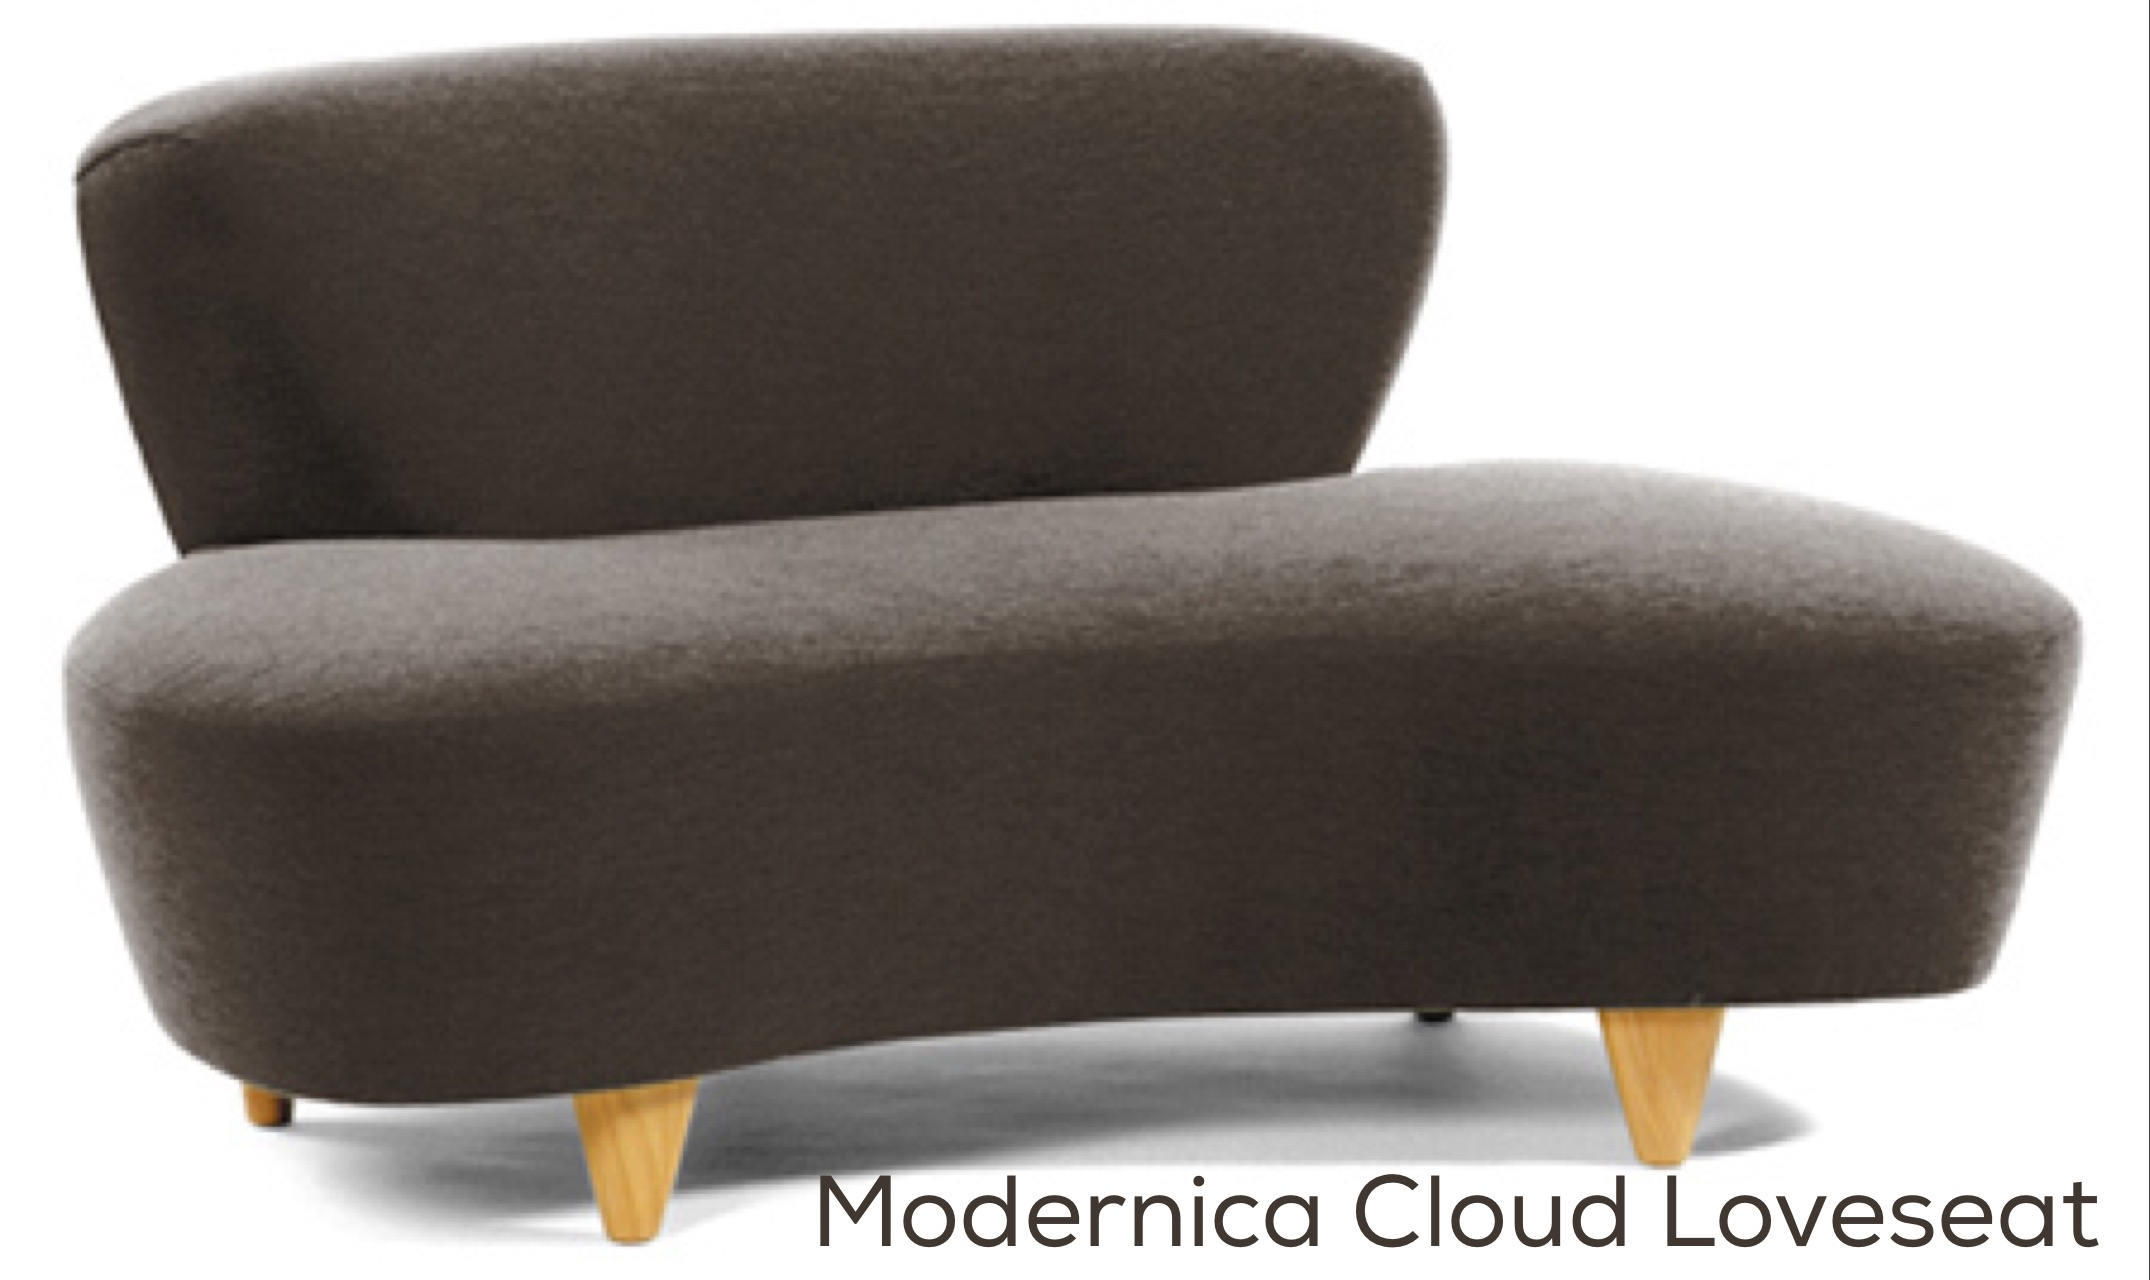 Modernica Cloud Loveseat